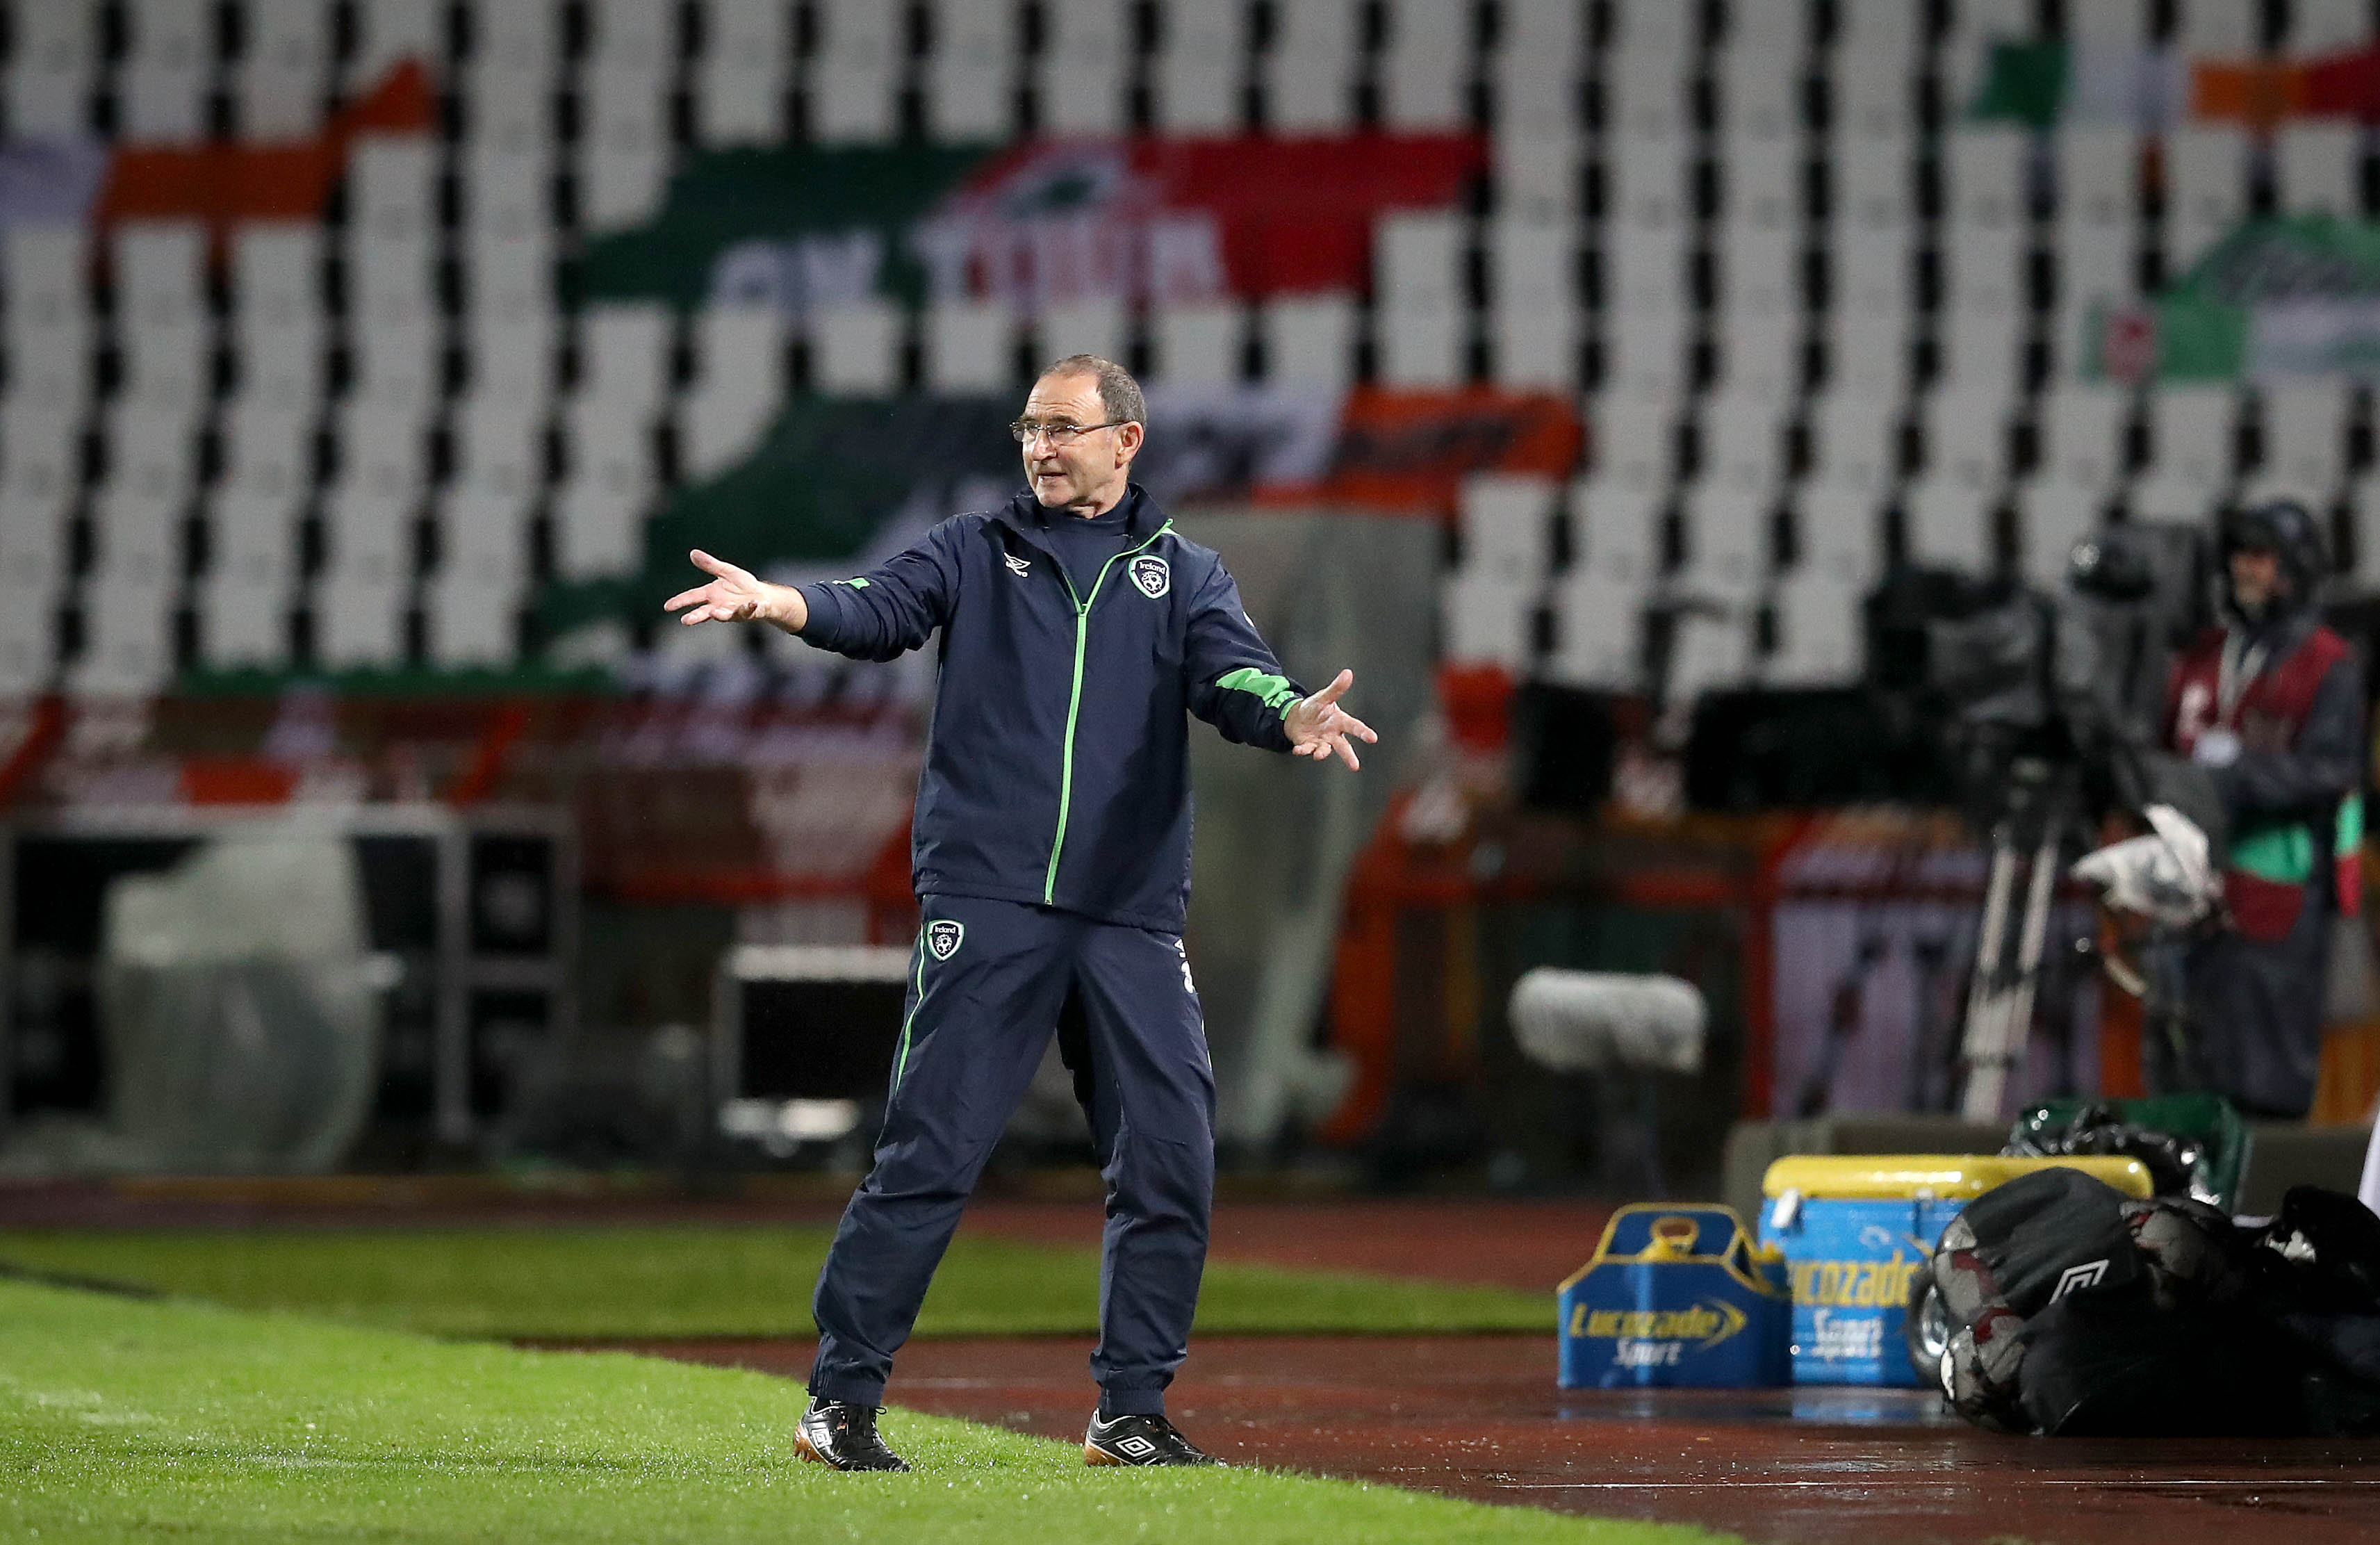 Rep. of Ireland's O'Neill keeping calm after win